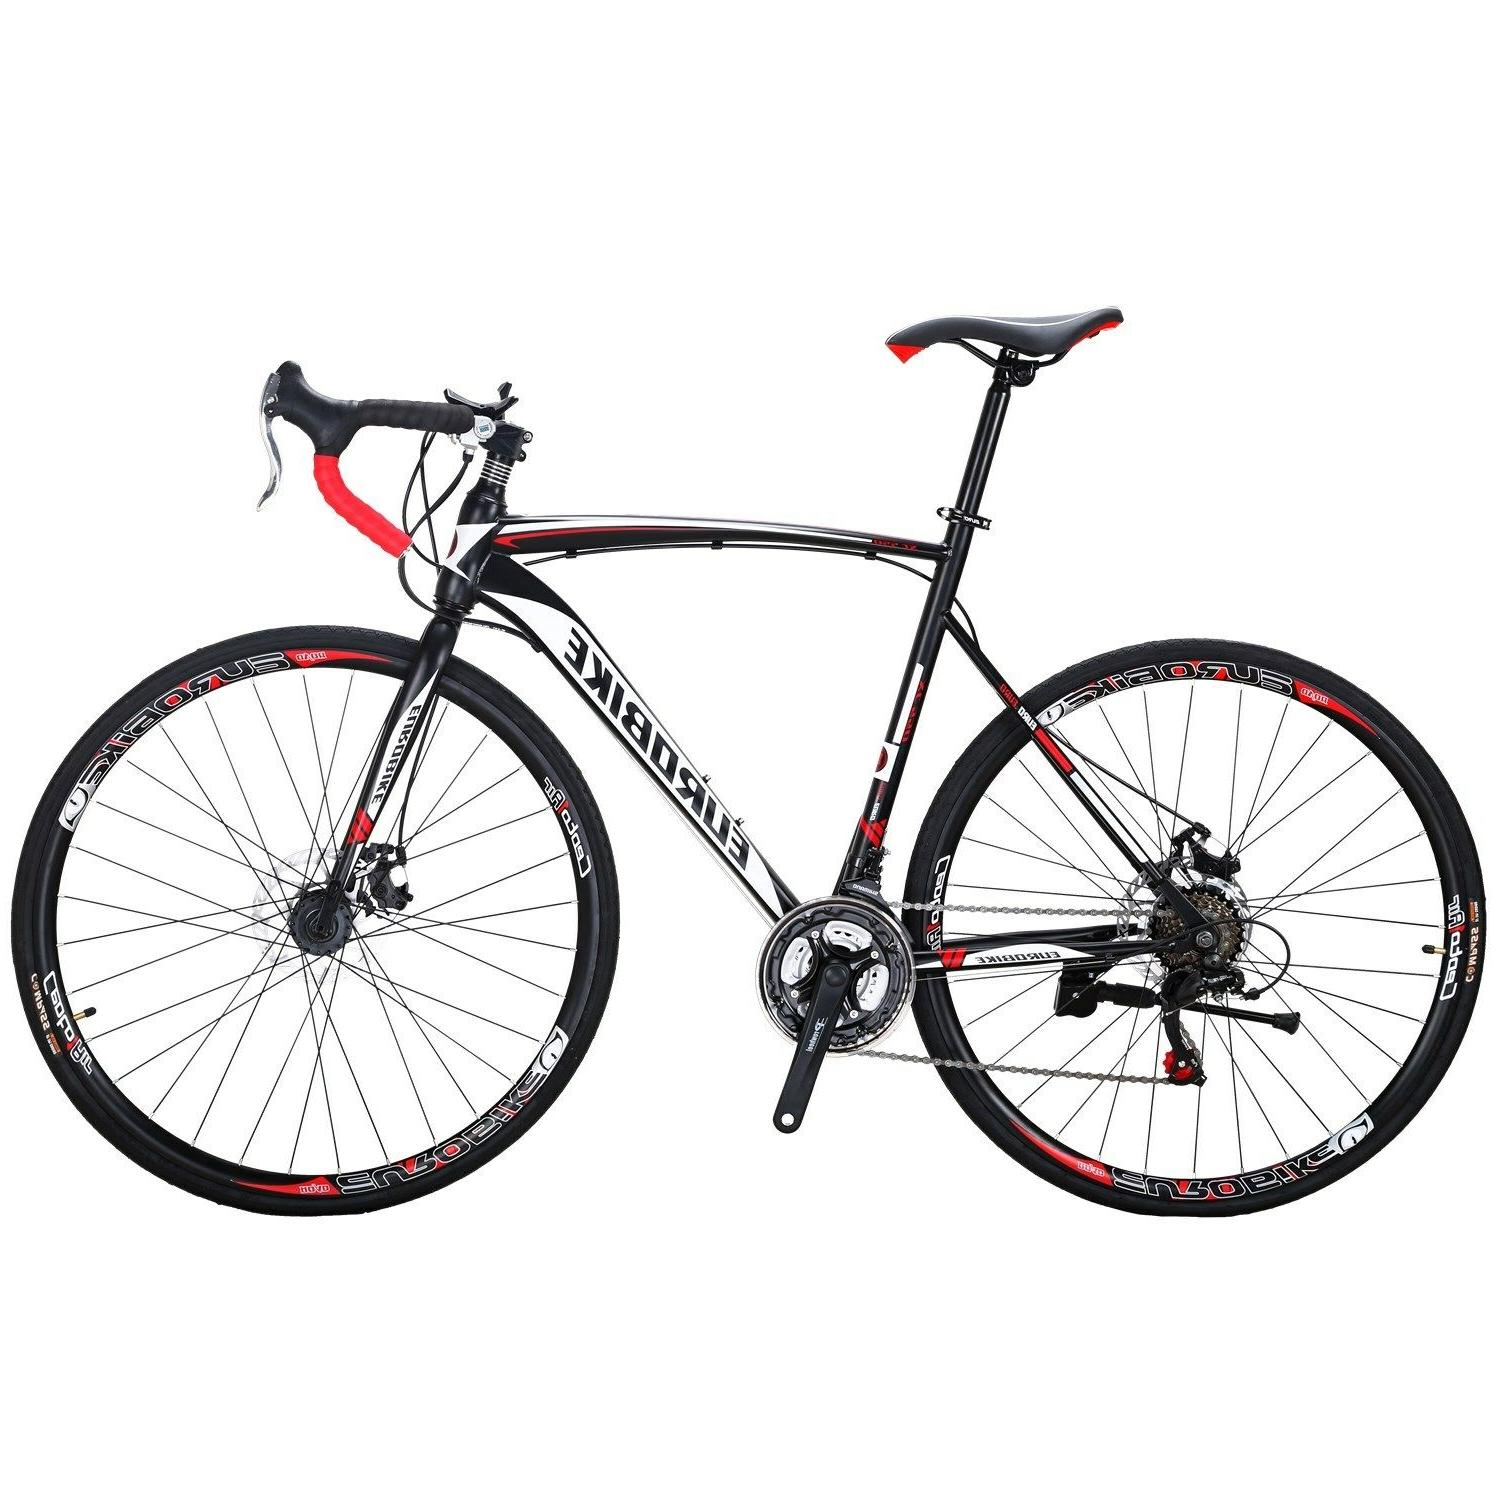 road bike 21 speed mens bikes 700c